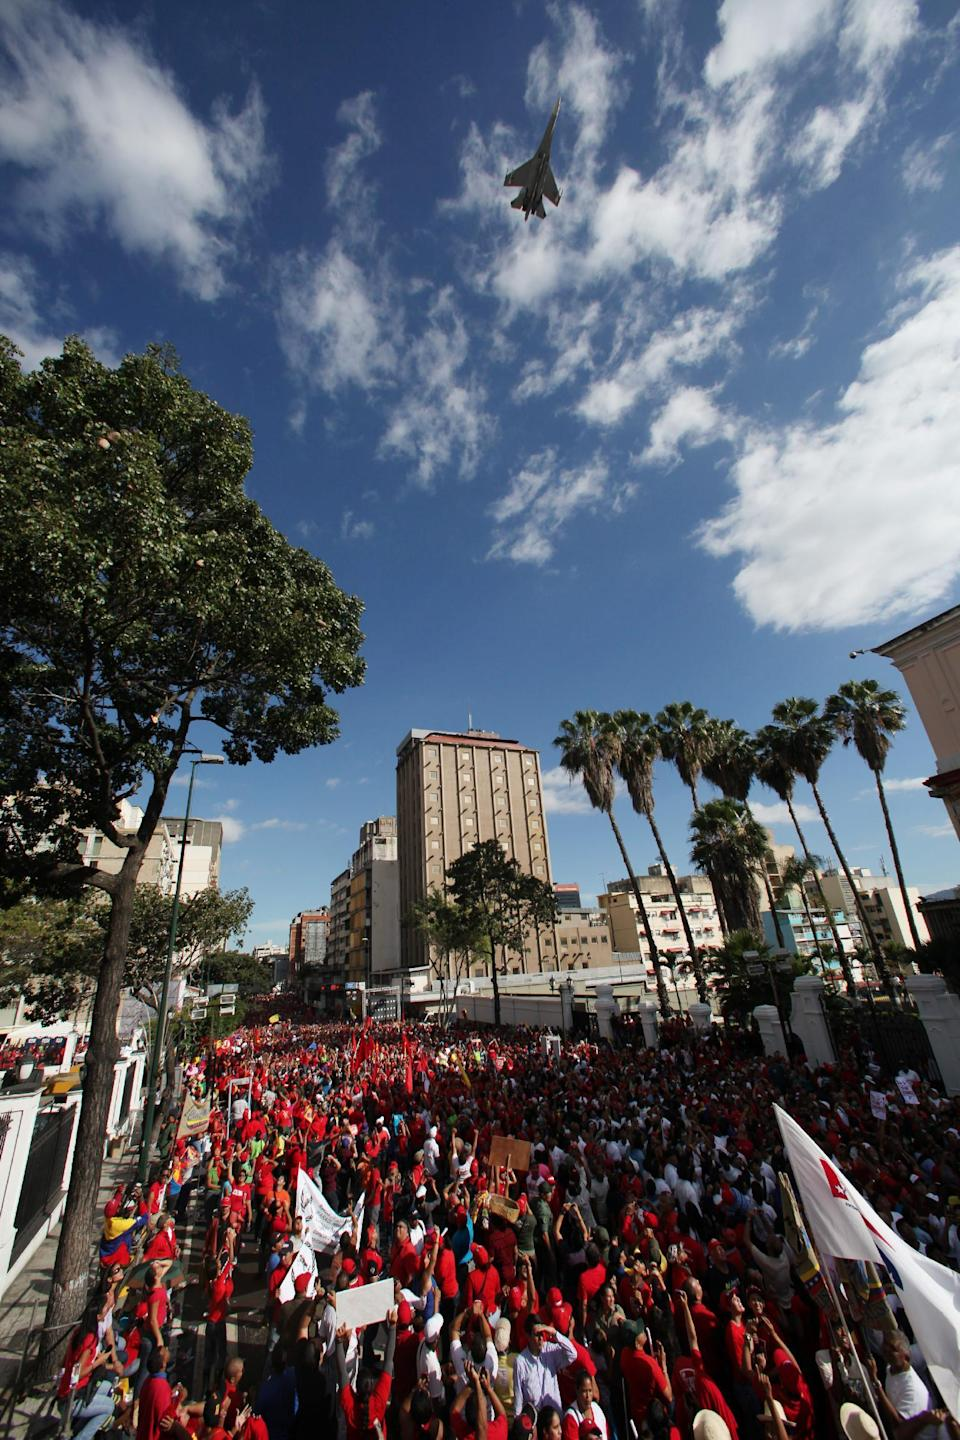 FILE - In this Jan. 10, 2013 file photo, a military plane flies over supporters of Venezuela's President Hugo Chavez gathered outside Miraflores presidential palace for Chavez's symbolic inauguration ceremony in Caracas, Venezuela. Since taking office in 1999, Chavez has tried to transform the military into defenders of his socialist-inspired policies, especially since a 2002 coup led by rebellious soldiers. Briefly dislodged from power, Chavez returned to the presidential palace only after loyalists within the military stepped in to put down the coup. (AP Photo/Fernando Llano, File)